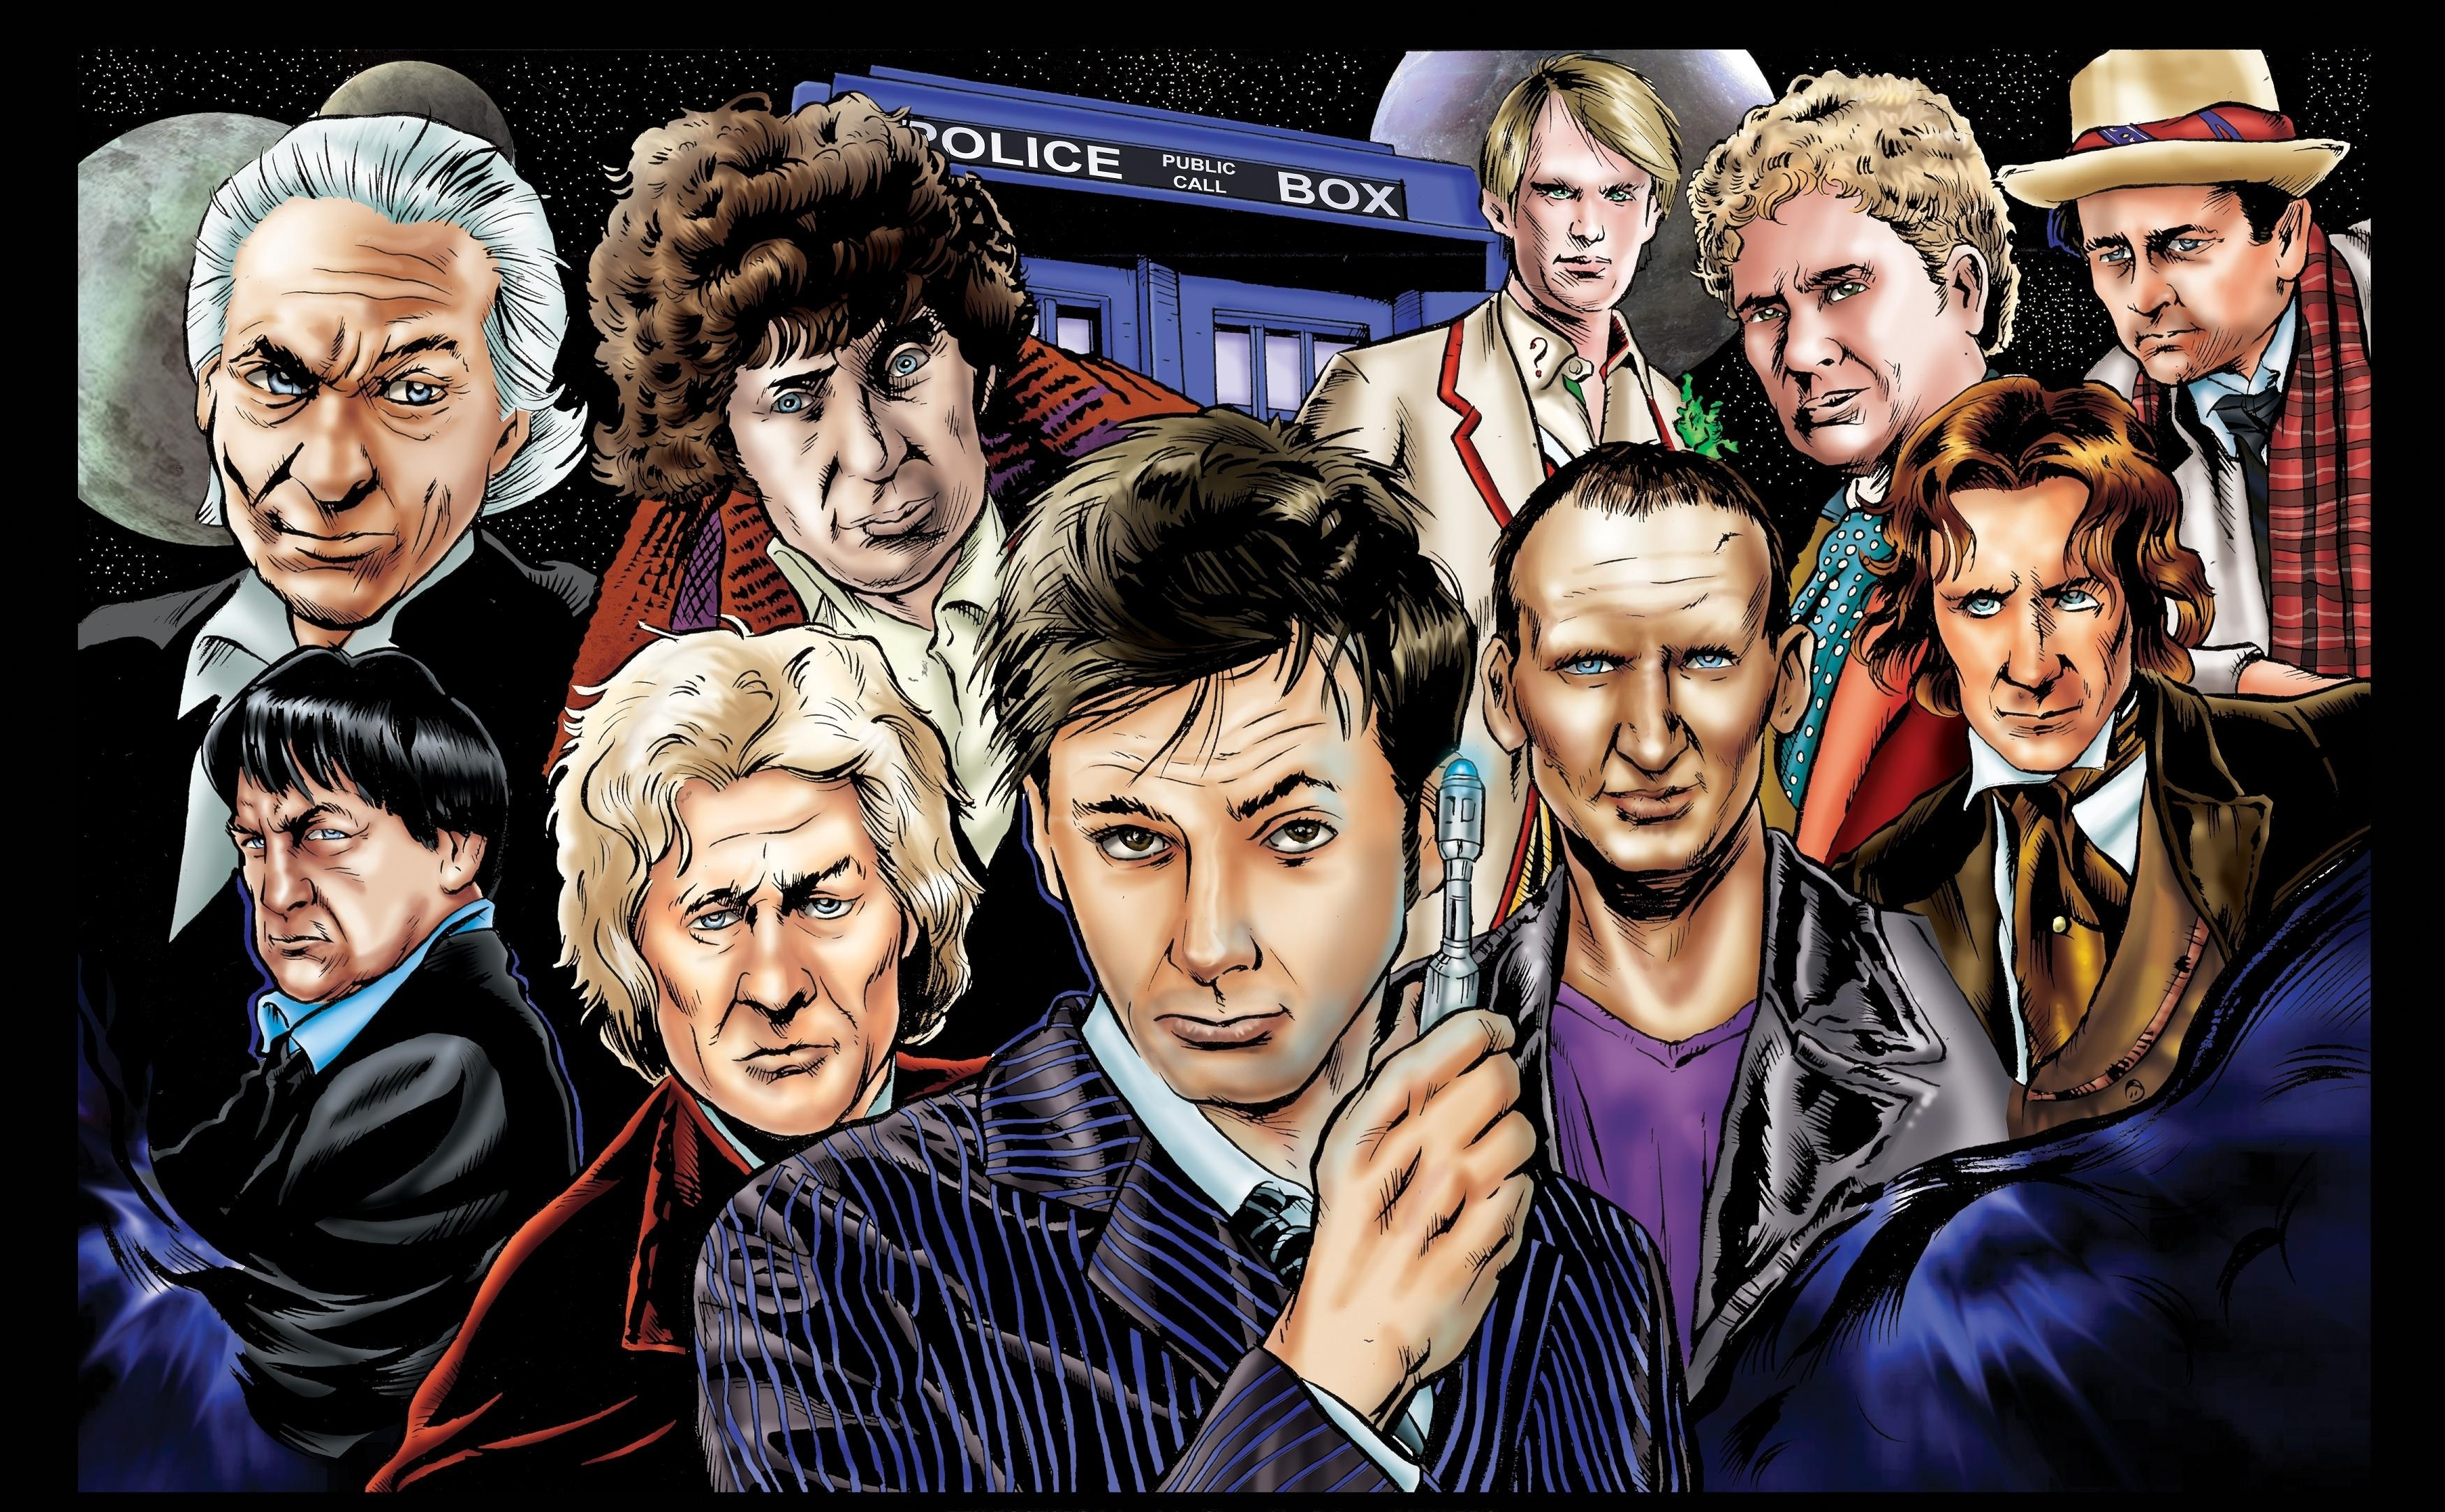 Almost all the Doctors Art with almost all the Doctors 3501x2165